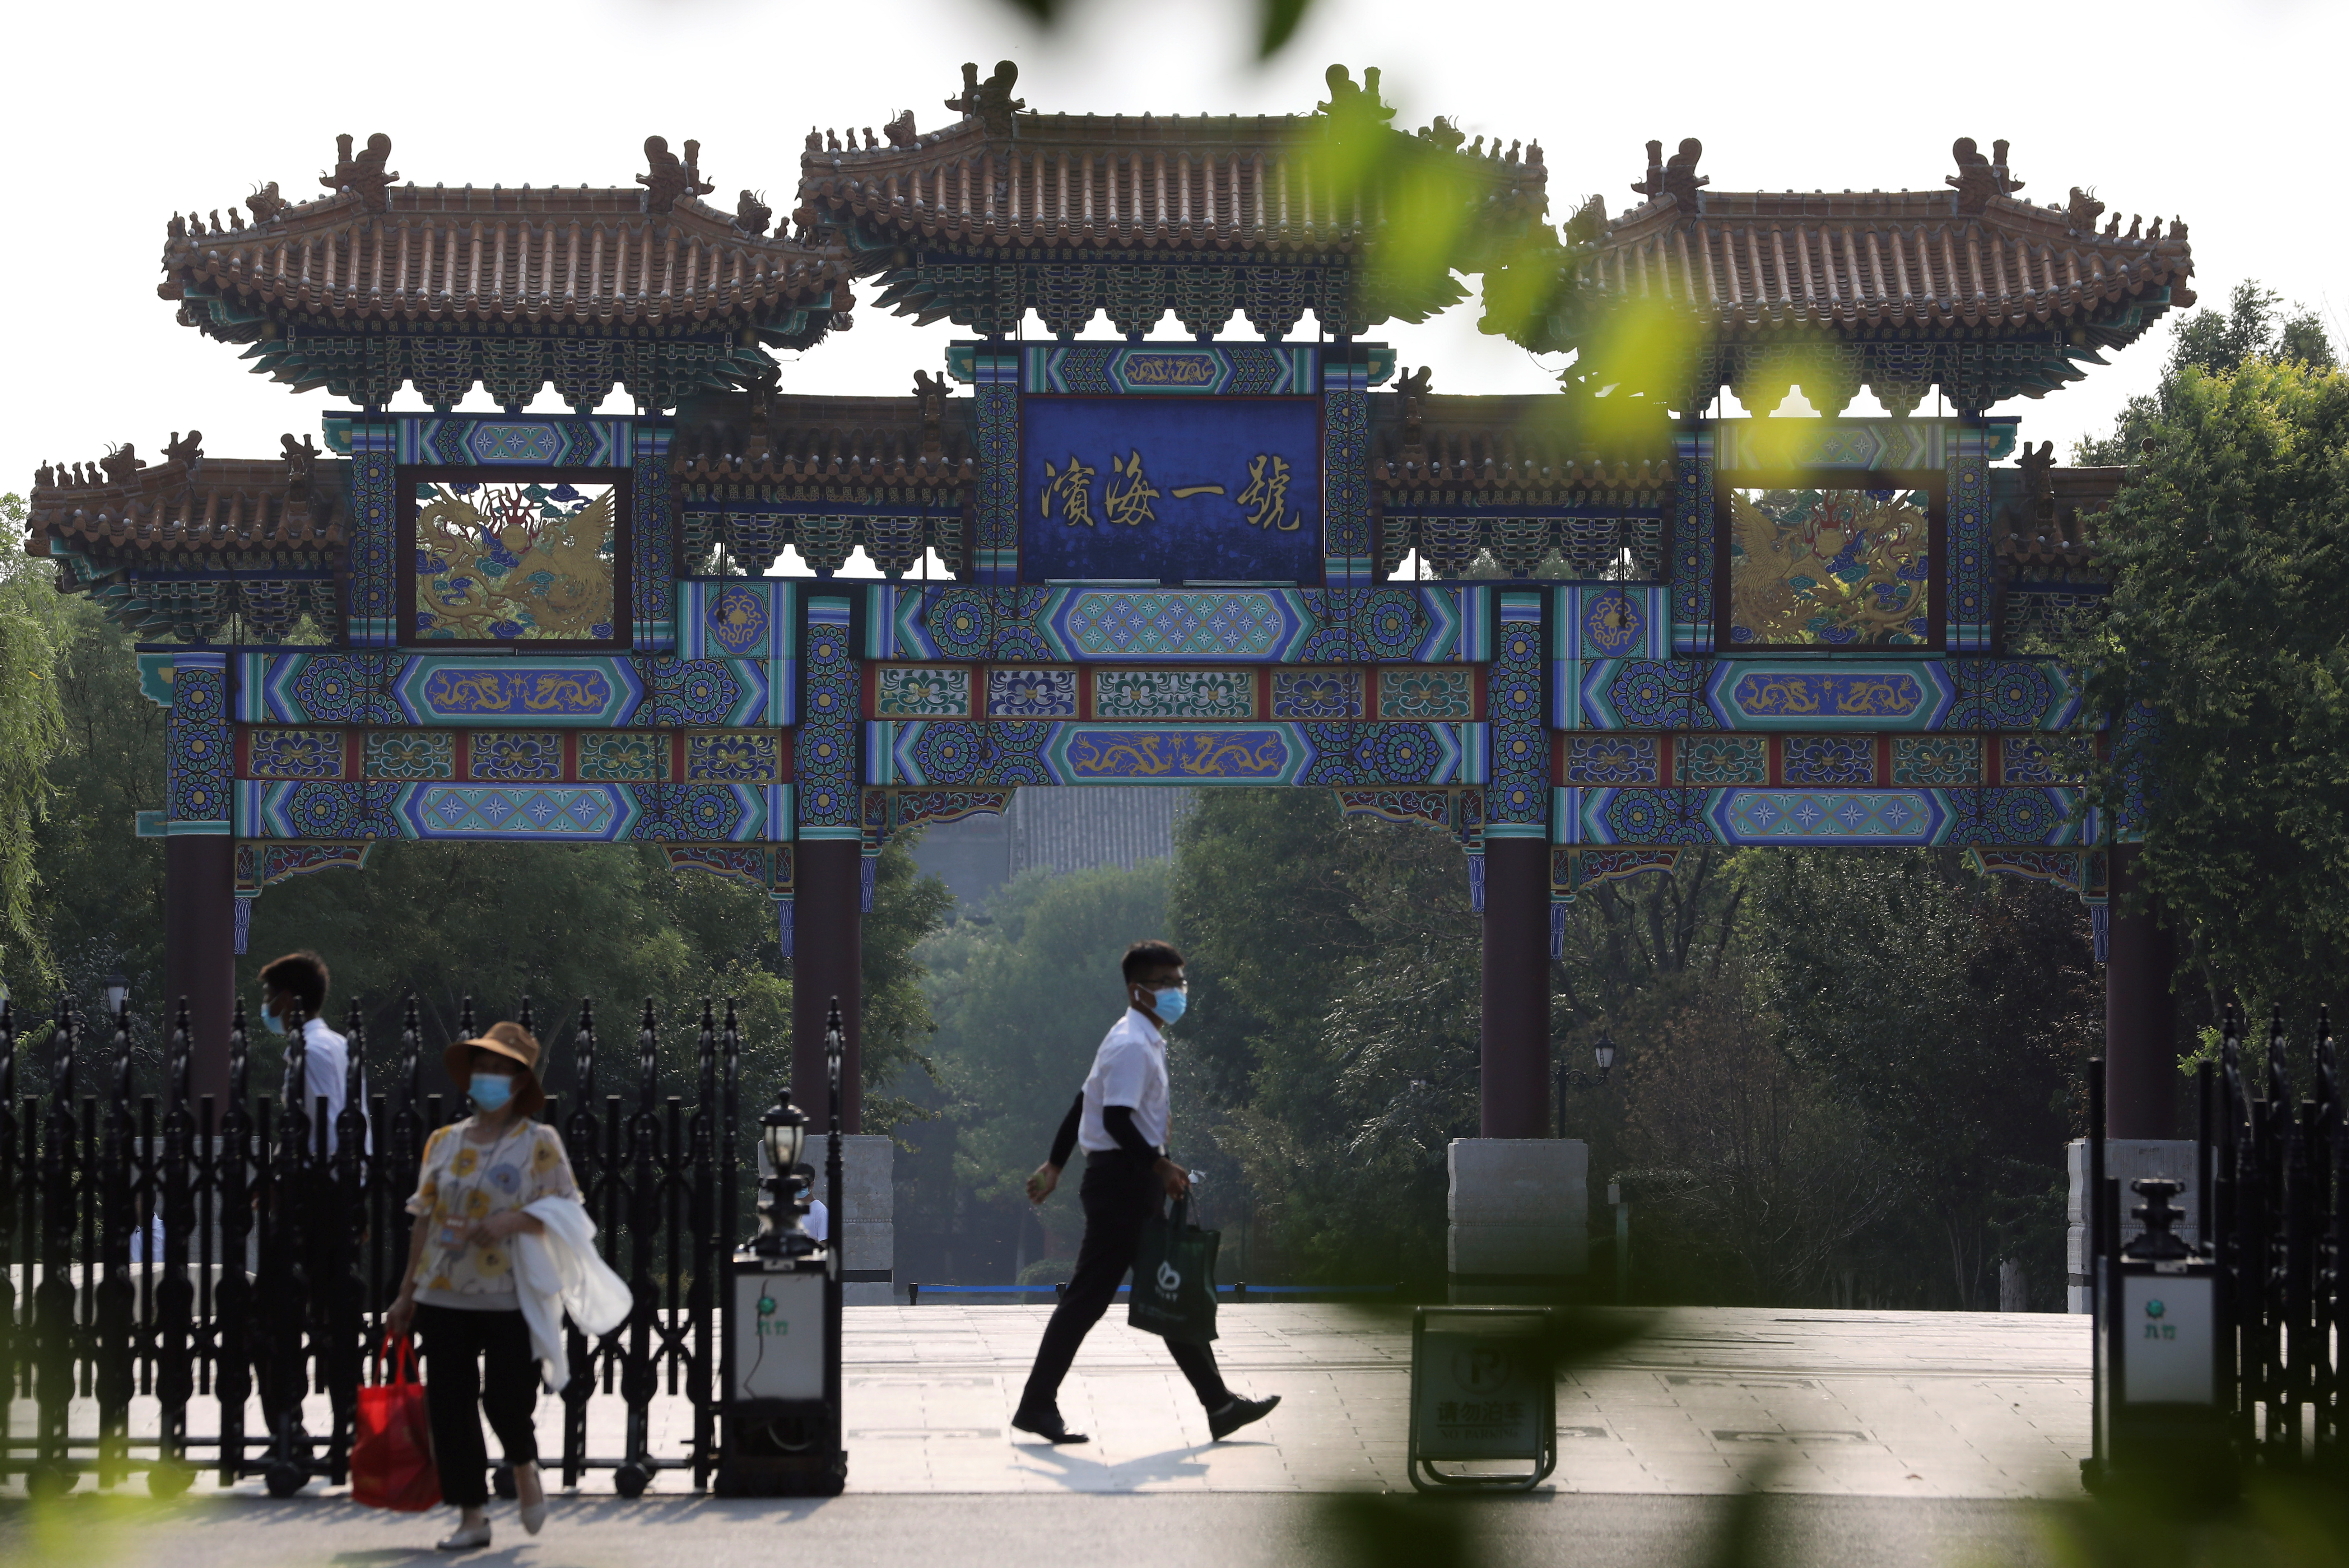 Security personnel are seen at an entrance to a hotel where U.S. Deputy Secretary of State Wendy Sherman is expected to meet Chinese officials, in Tianjin, China July 25, 2021.   REUTERS/Tingshu Wang